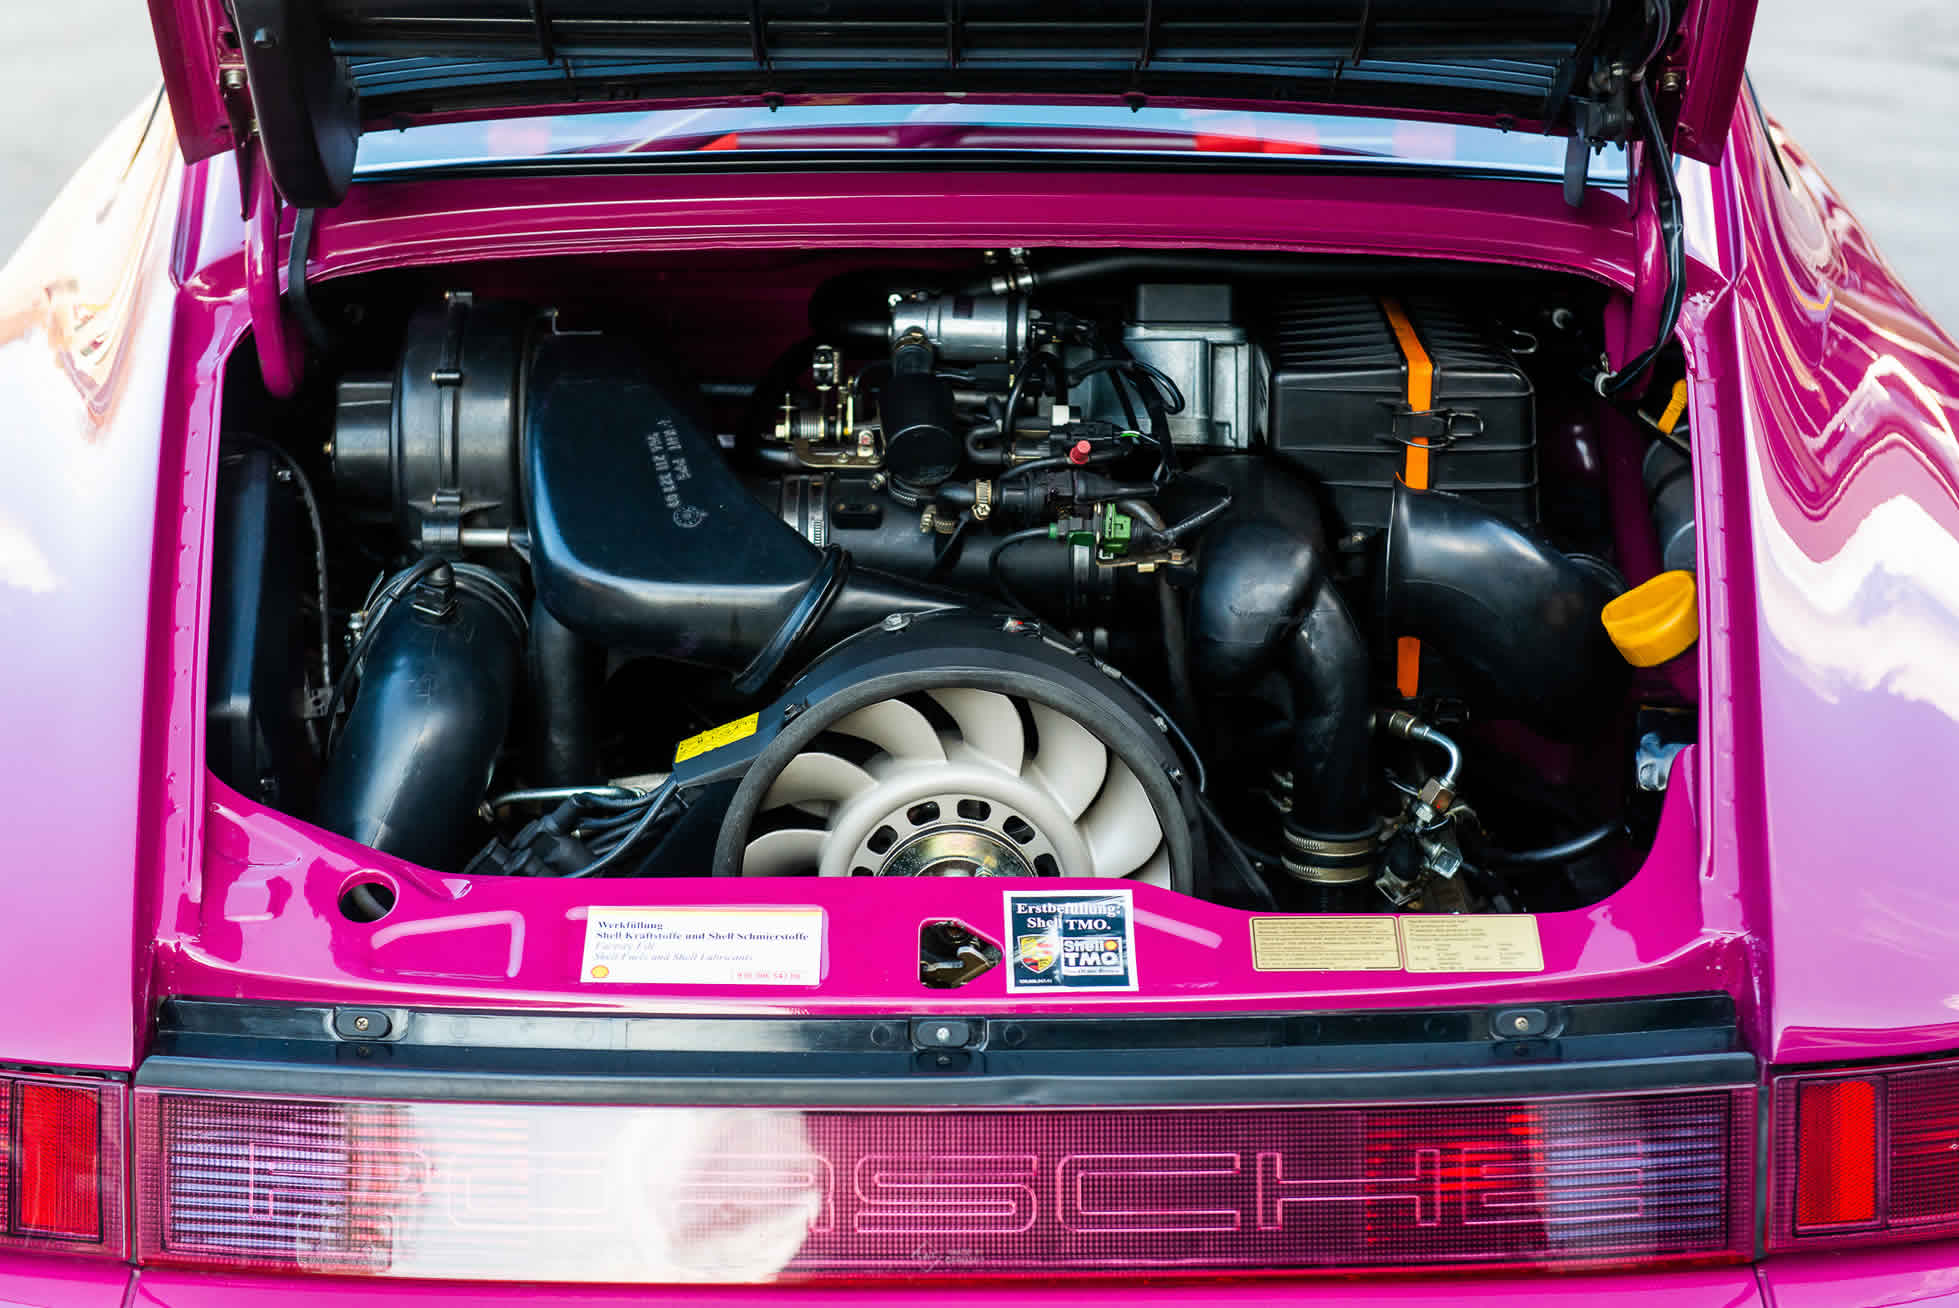 1991 Porsche 911 (964) Carrera RS Clubsport. For Sale at Sports Purpose, Bicester Heritage, Oxon.